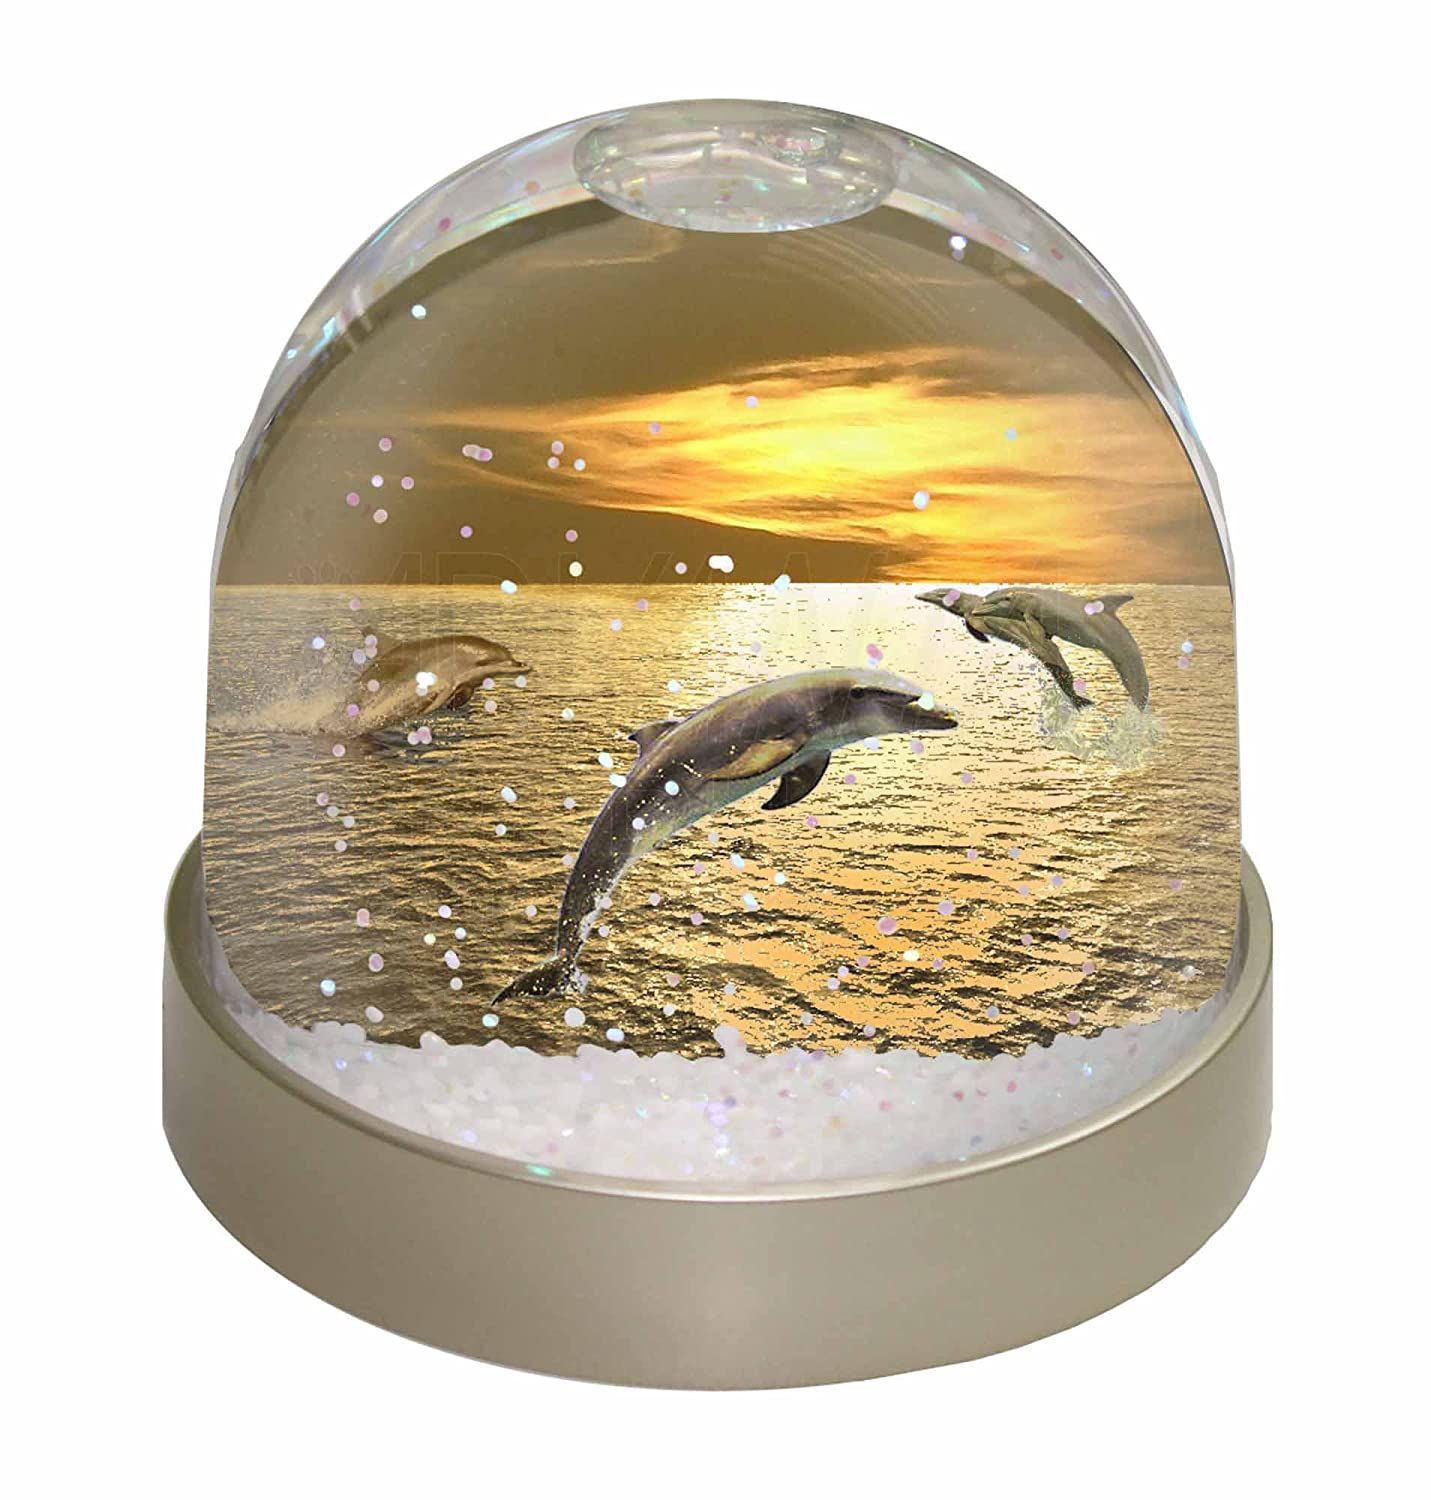 Advanta Gold Sea Sunset Dolphins Snow Dome Globe Gift, Multi-Colour, 9.2 x 9.2 x 8 cm Advanta Products AF-D4GL